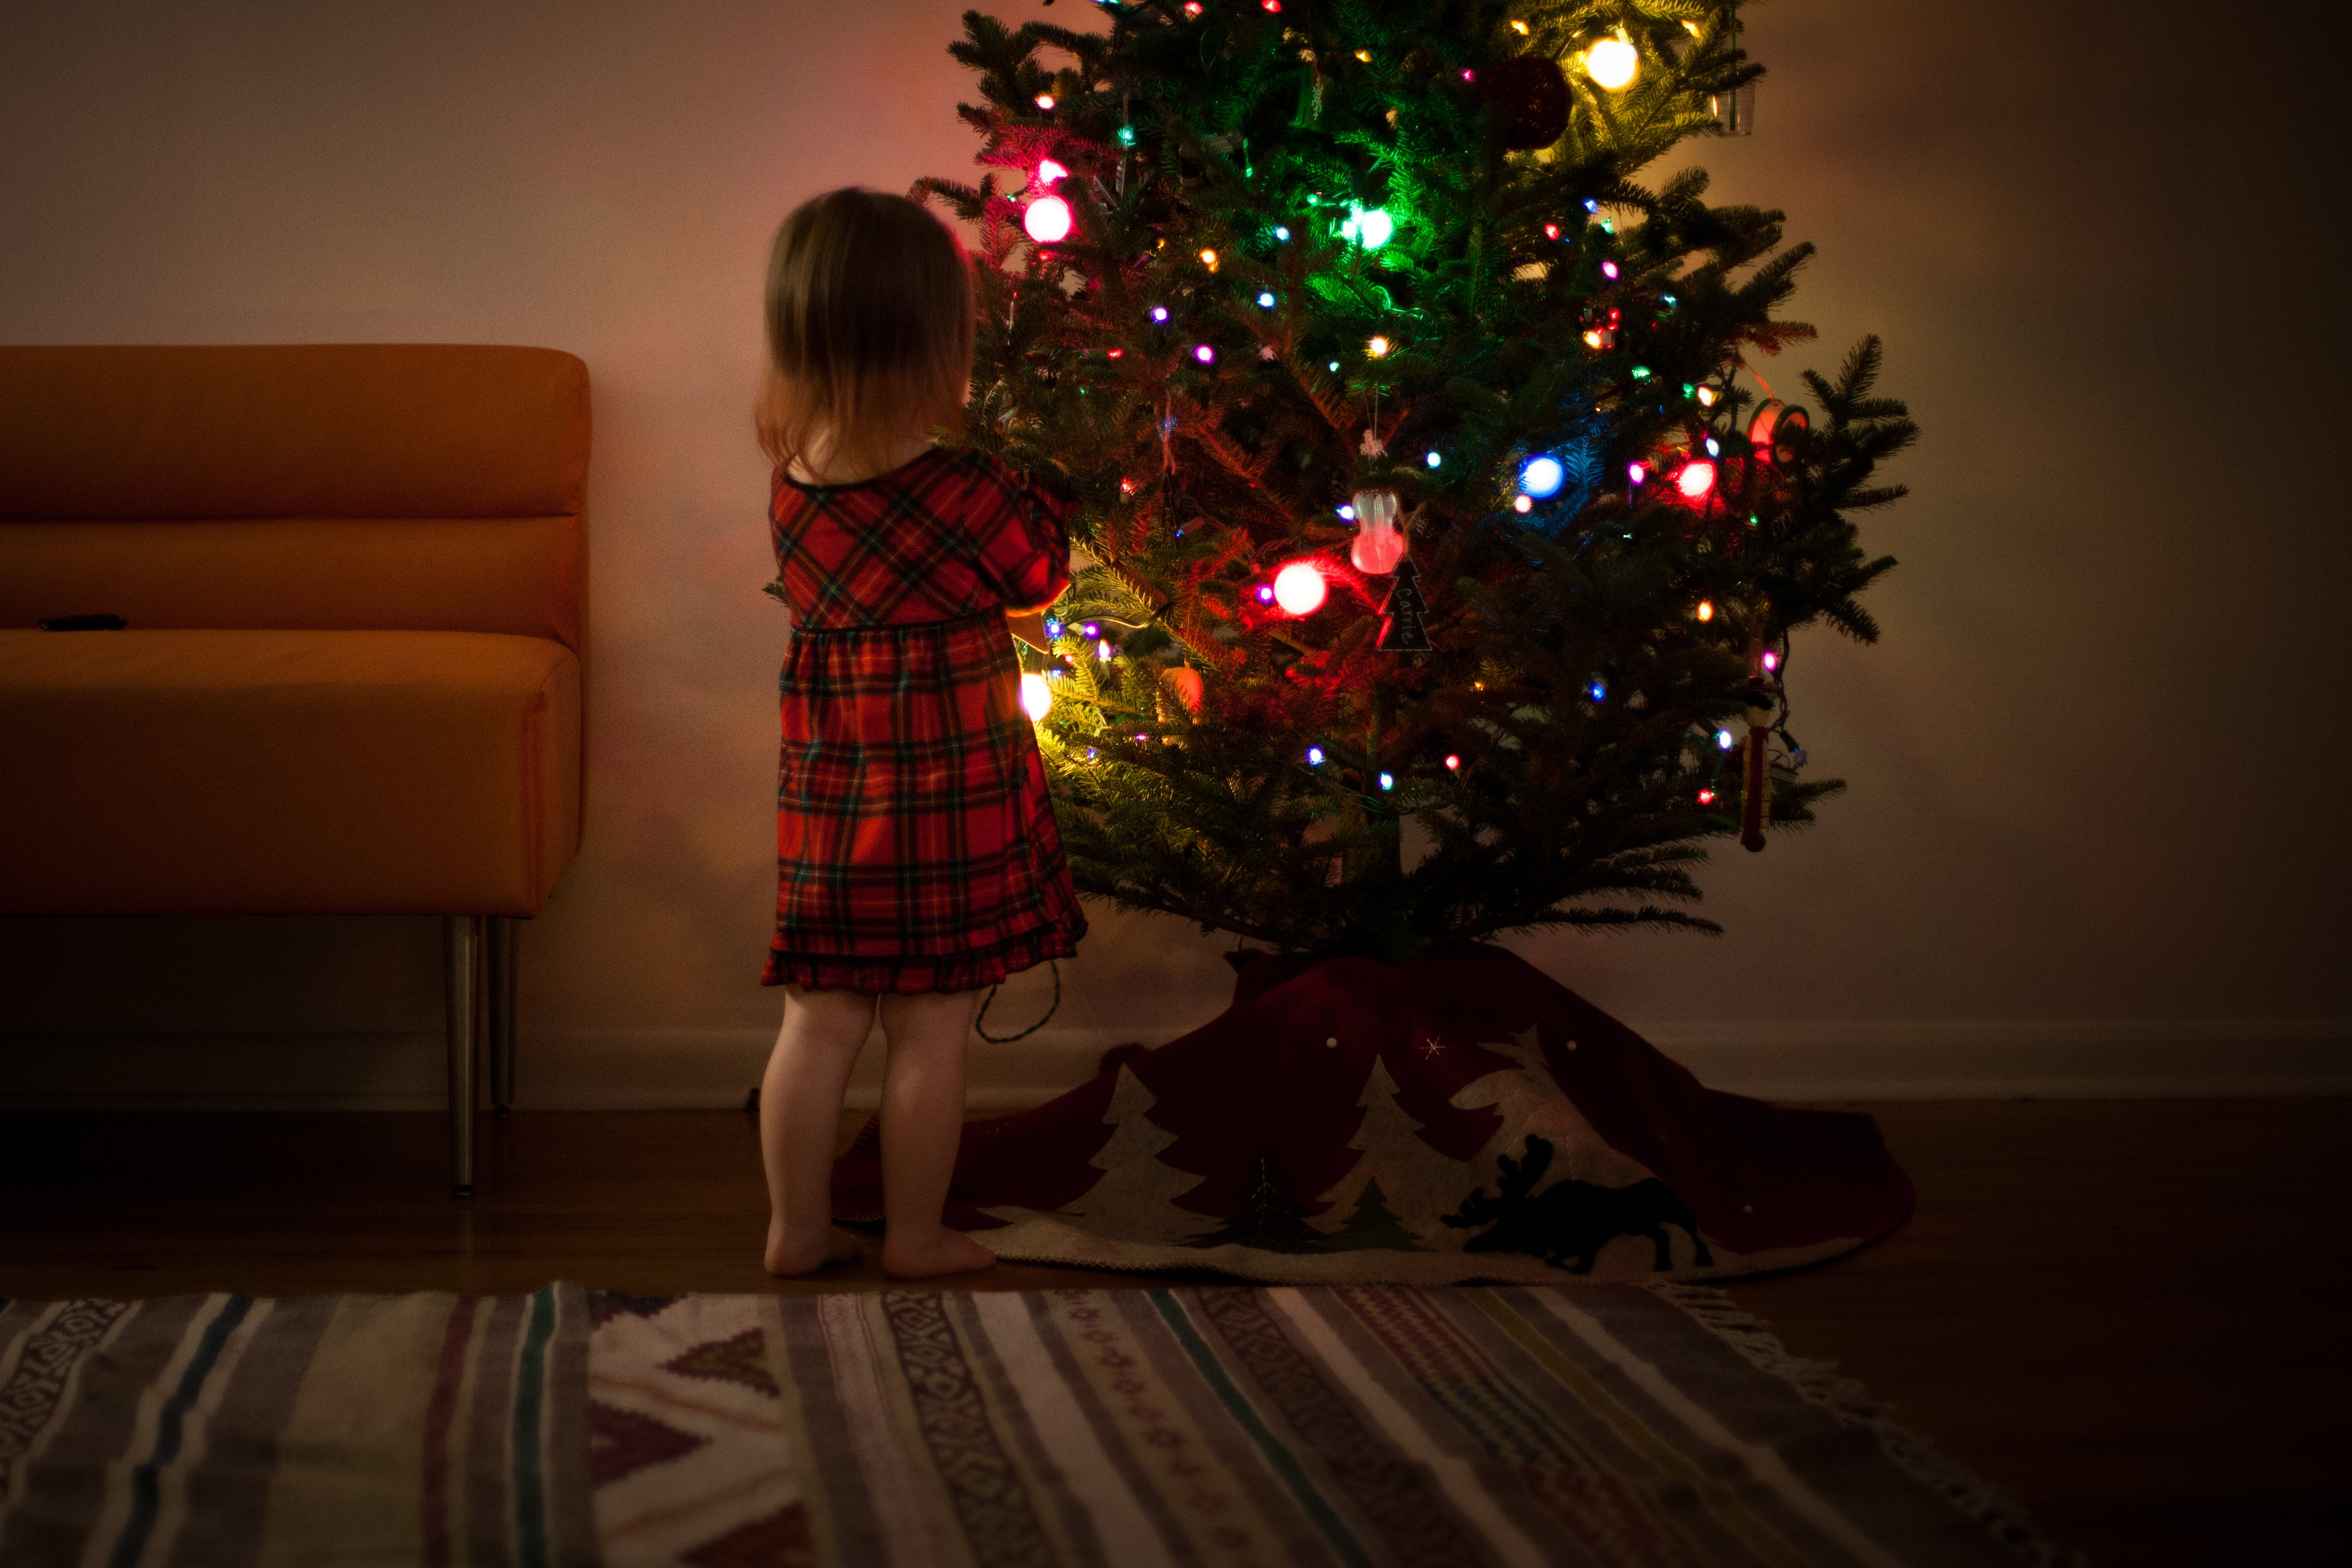 Girl in Red and Black Dress Standing in Front of Christmas Tree Inside Room